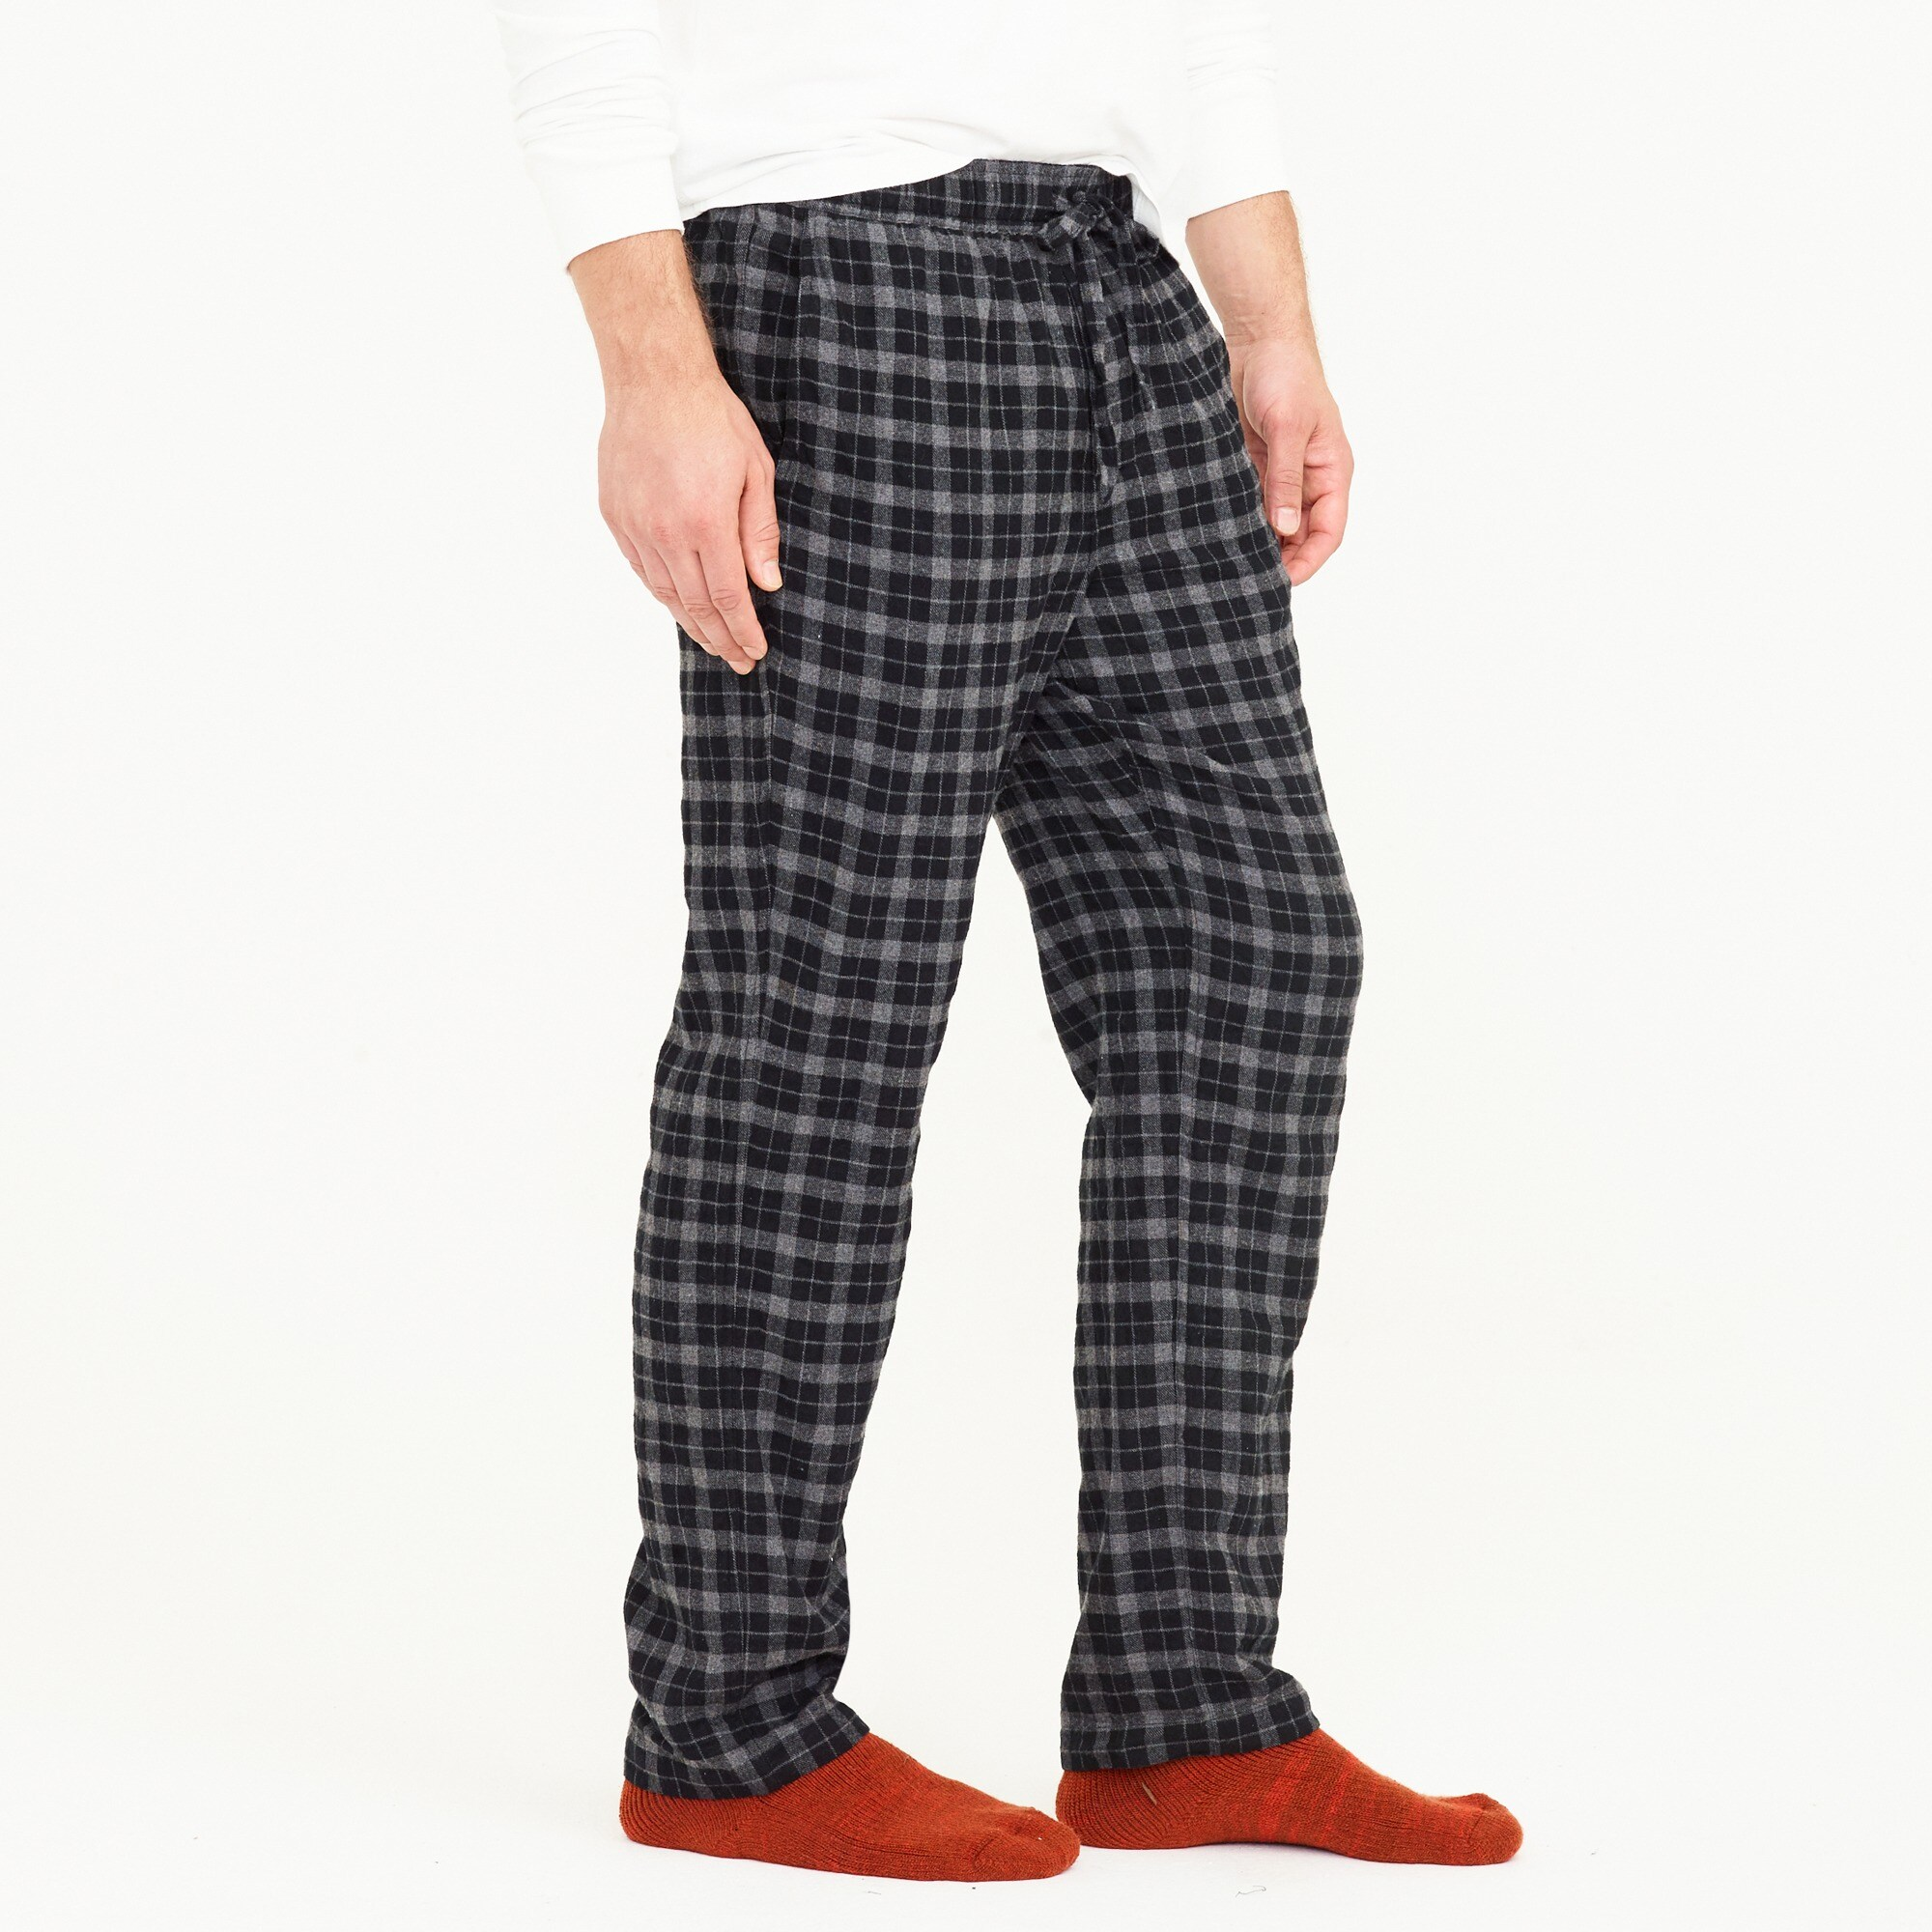 Image 3 for Cotton lounge pant in charcoal plaid